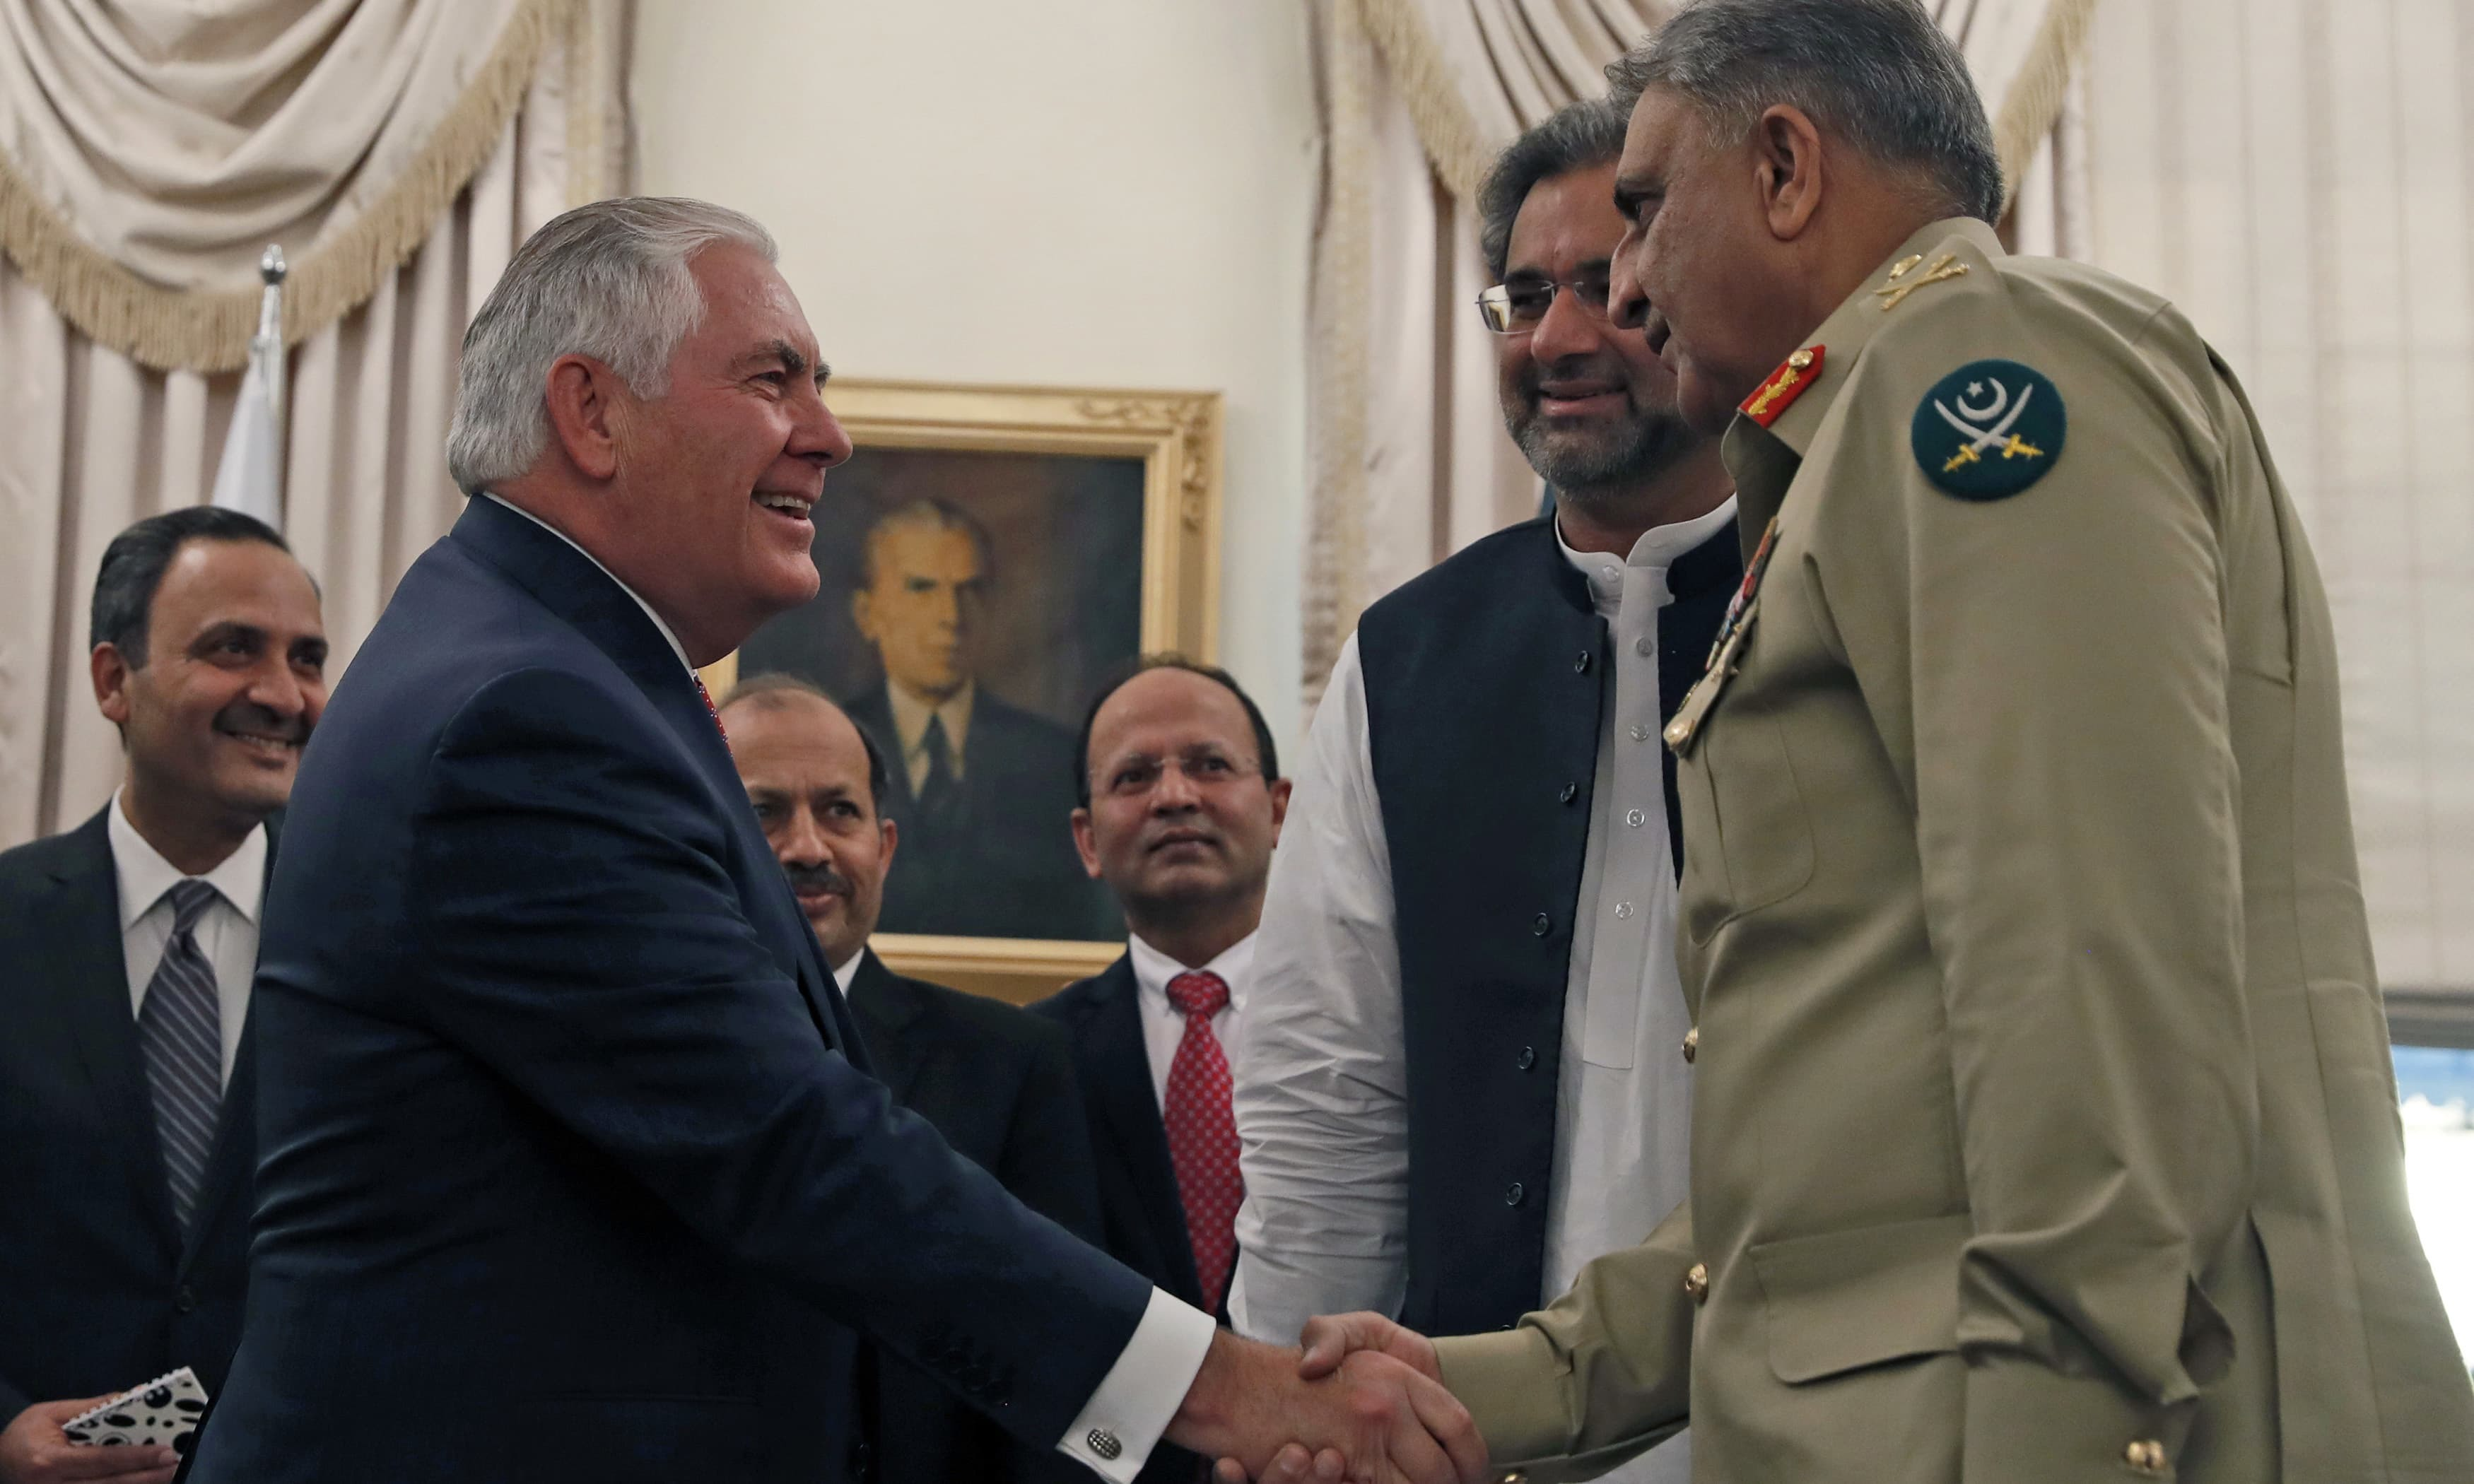 US Secretary of State Rex Tillerson shakes hands with Chief of Army Staff Qamar Javed Bajwa, with Prime Minister Shahid Khaqan Abbasi, center right, Tuesday, Oct. 24, 2017, in Islamabad, Pakistan. Photo: Associated Press